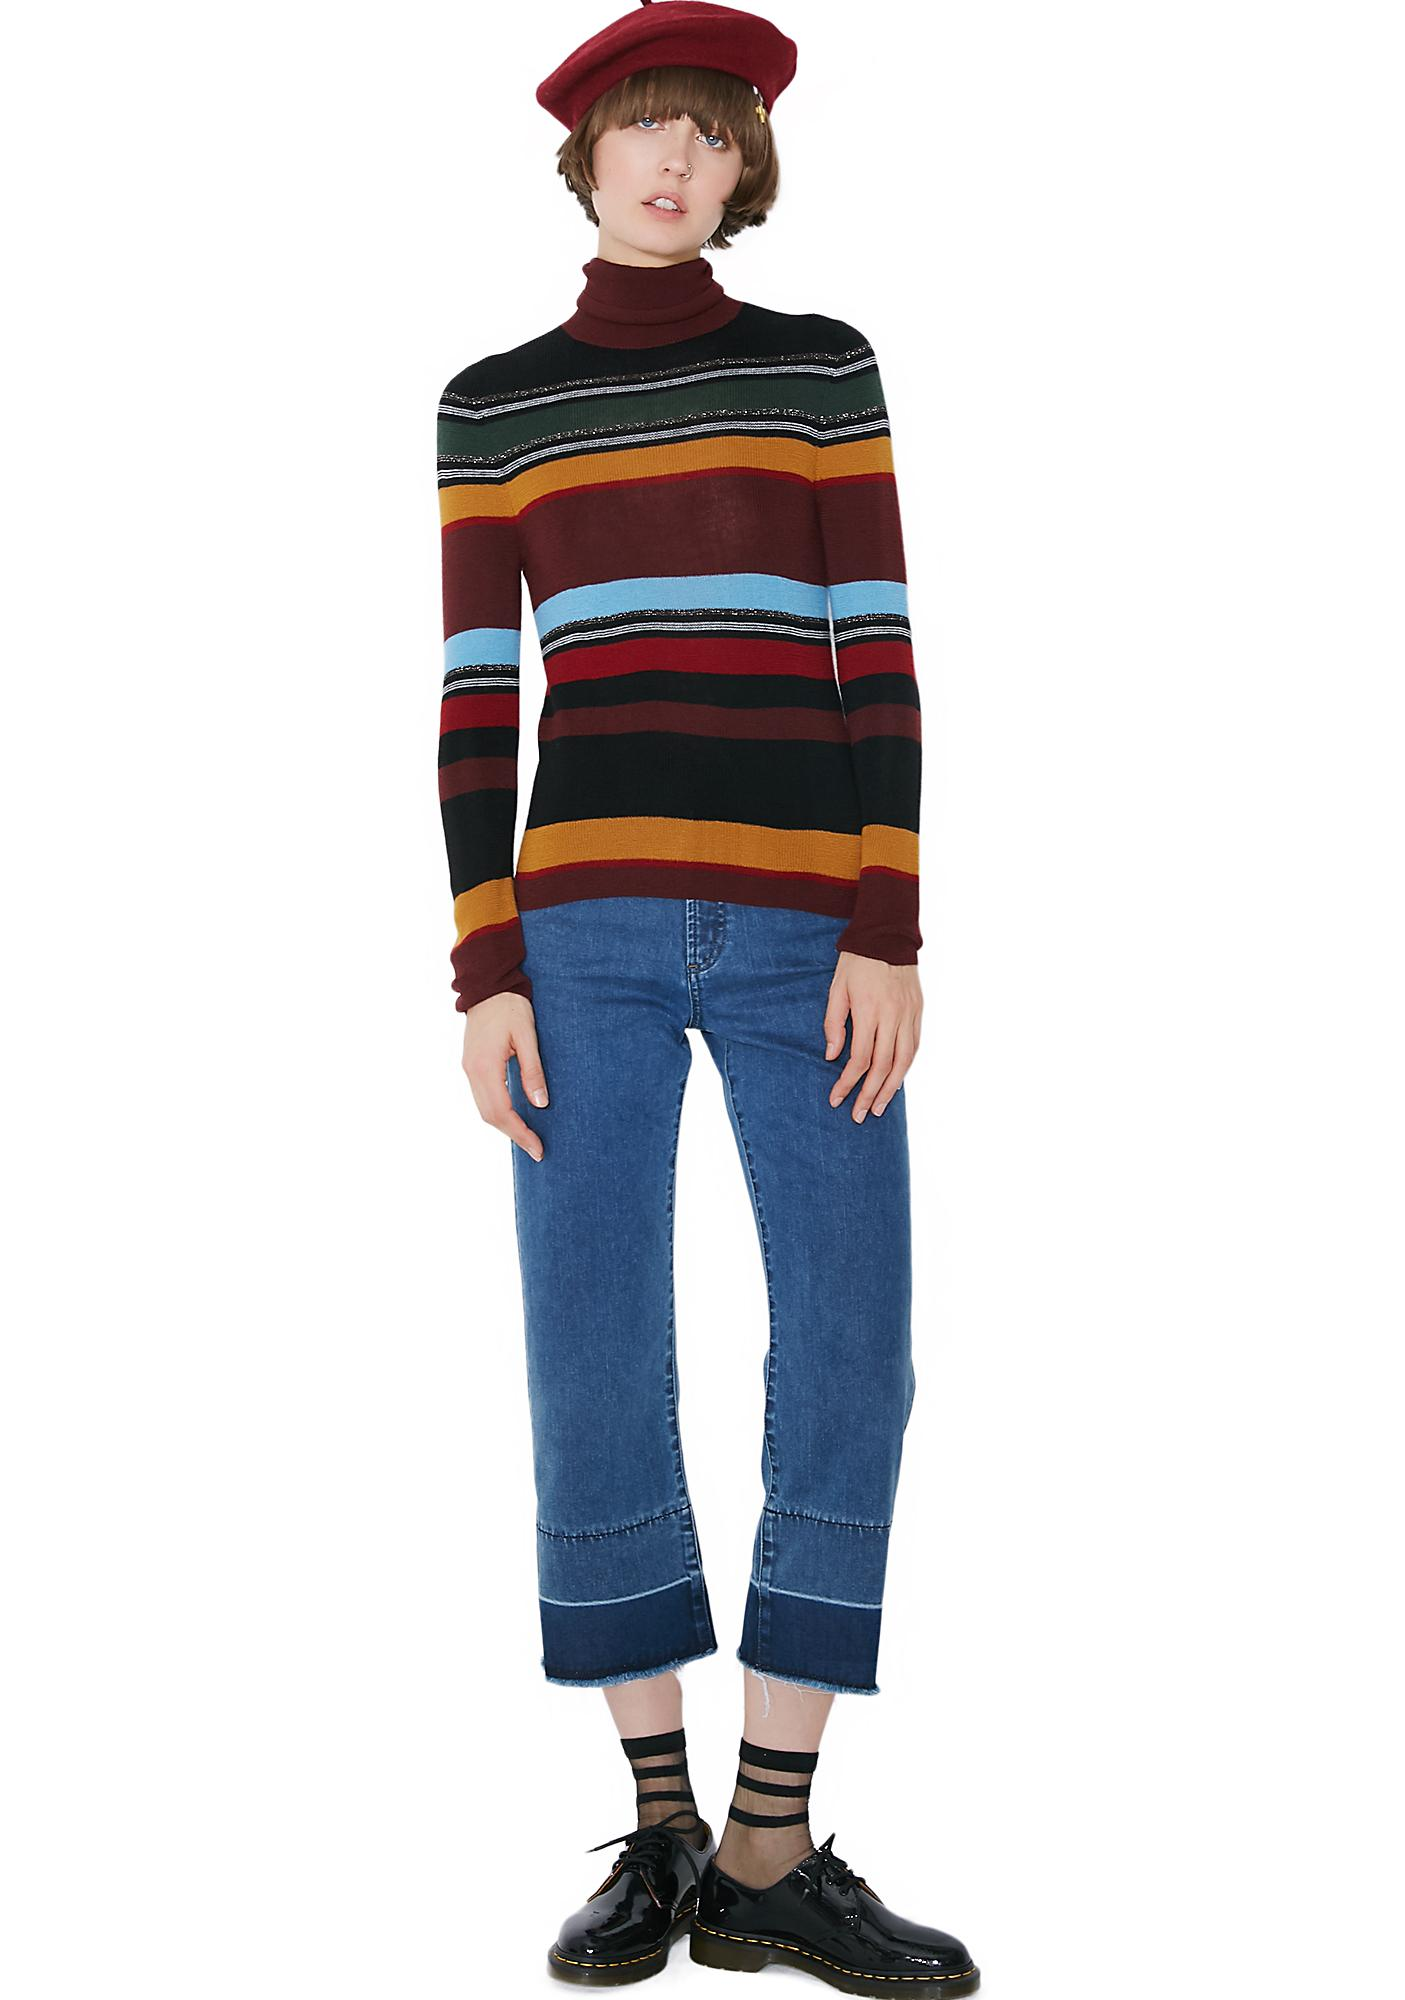 Levis Fine Gauge Turtleneck